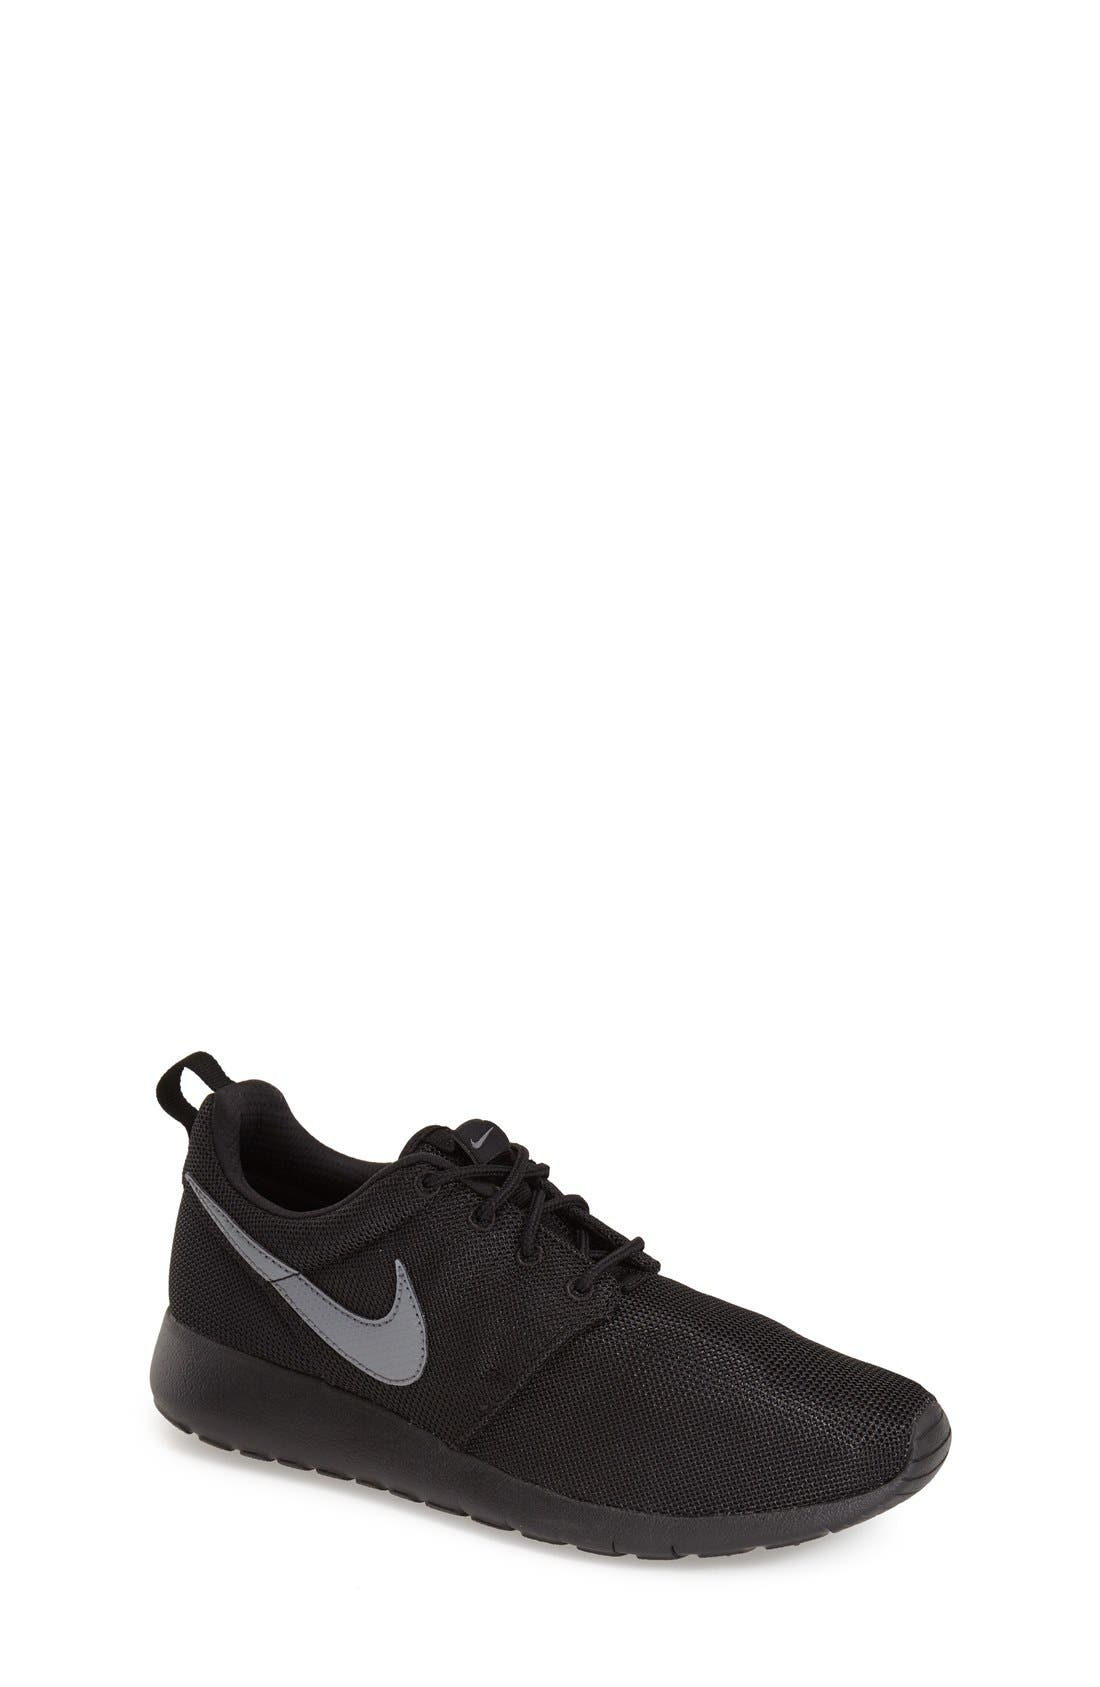 'Roshe Run' Sneaker,                             Main thumbnail 10, color,